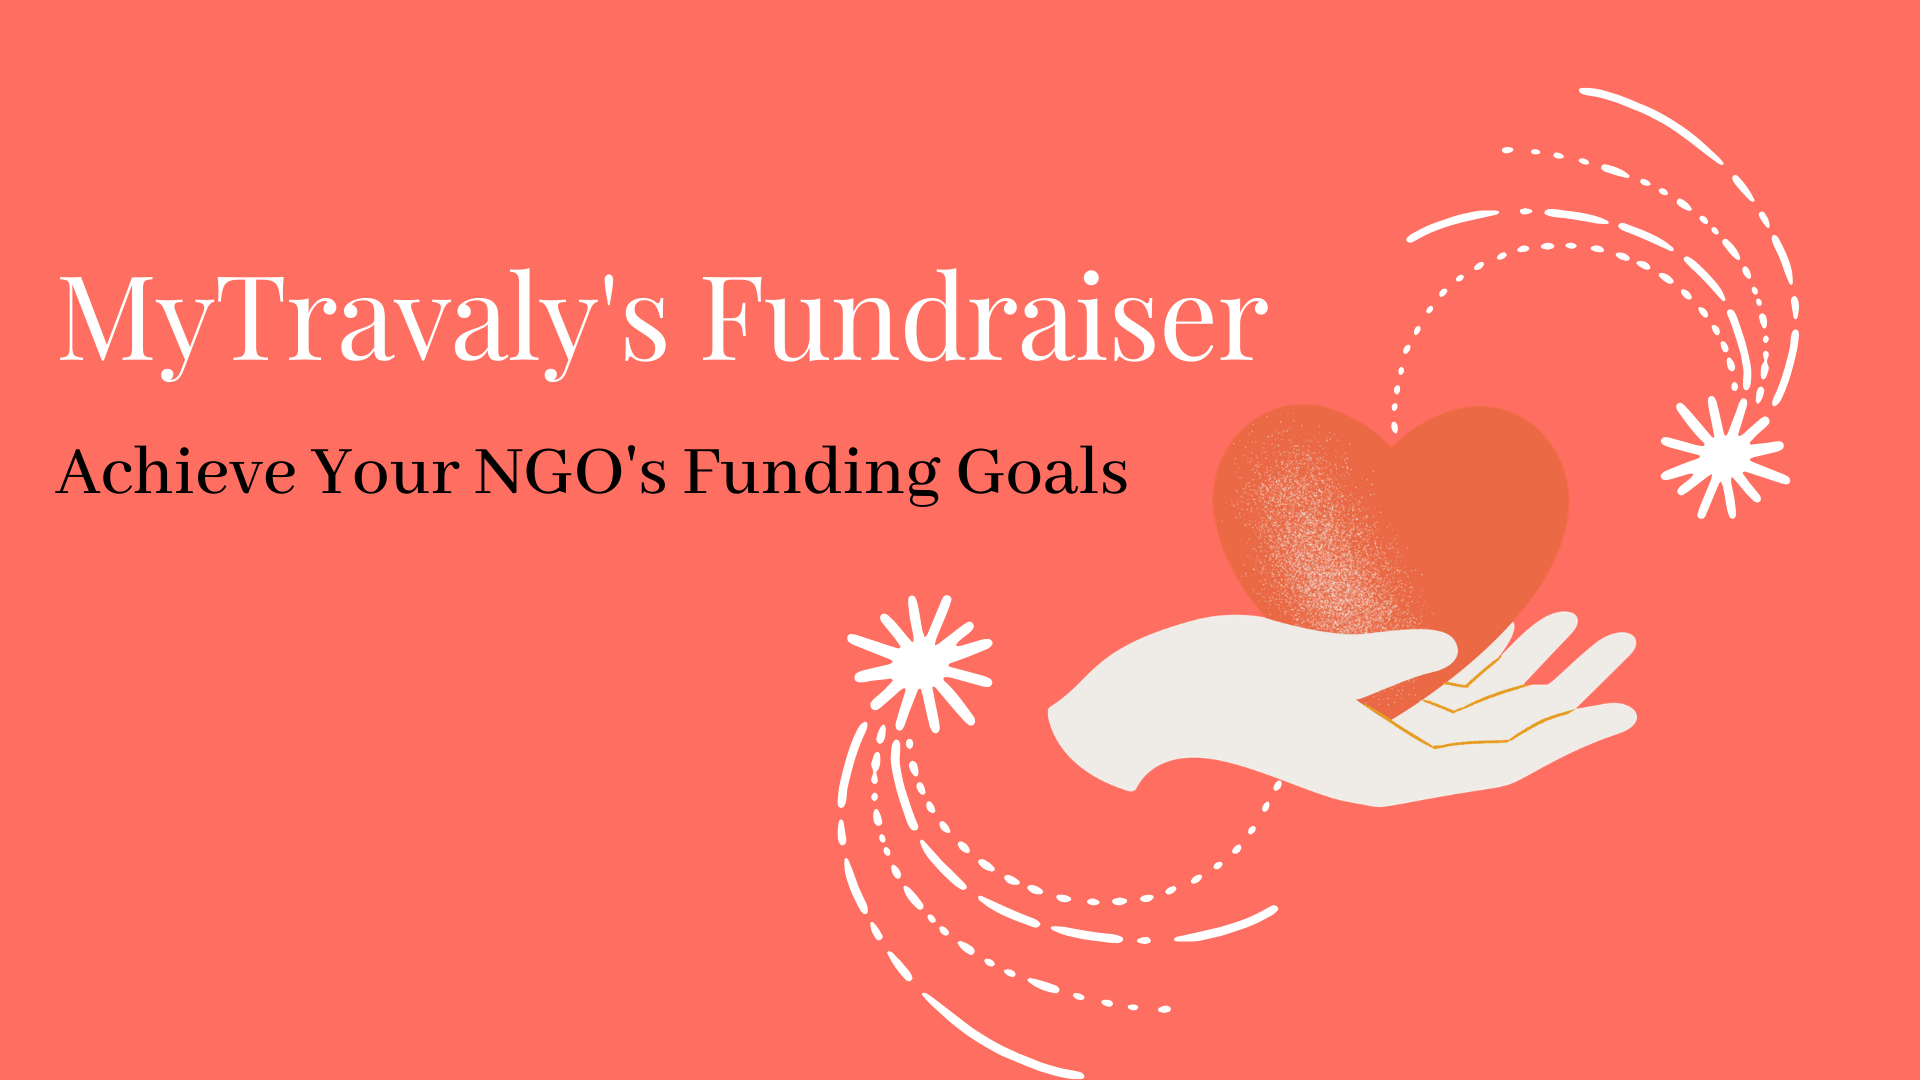 MyTravaly's Fundraiser for NGOs - Achieve Your Funding Goals